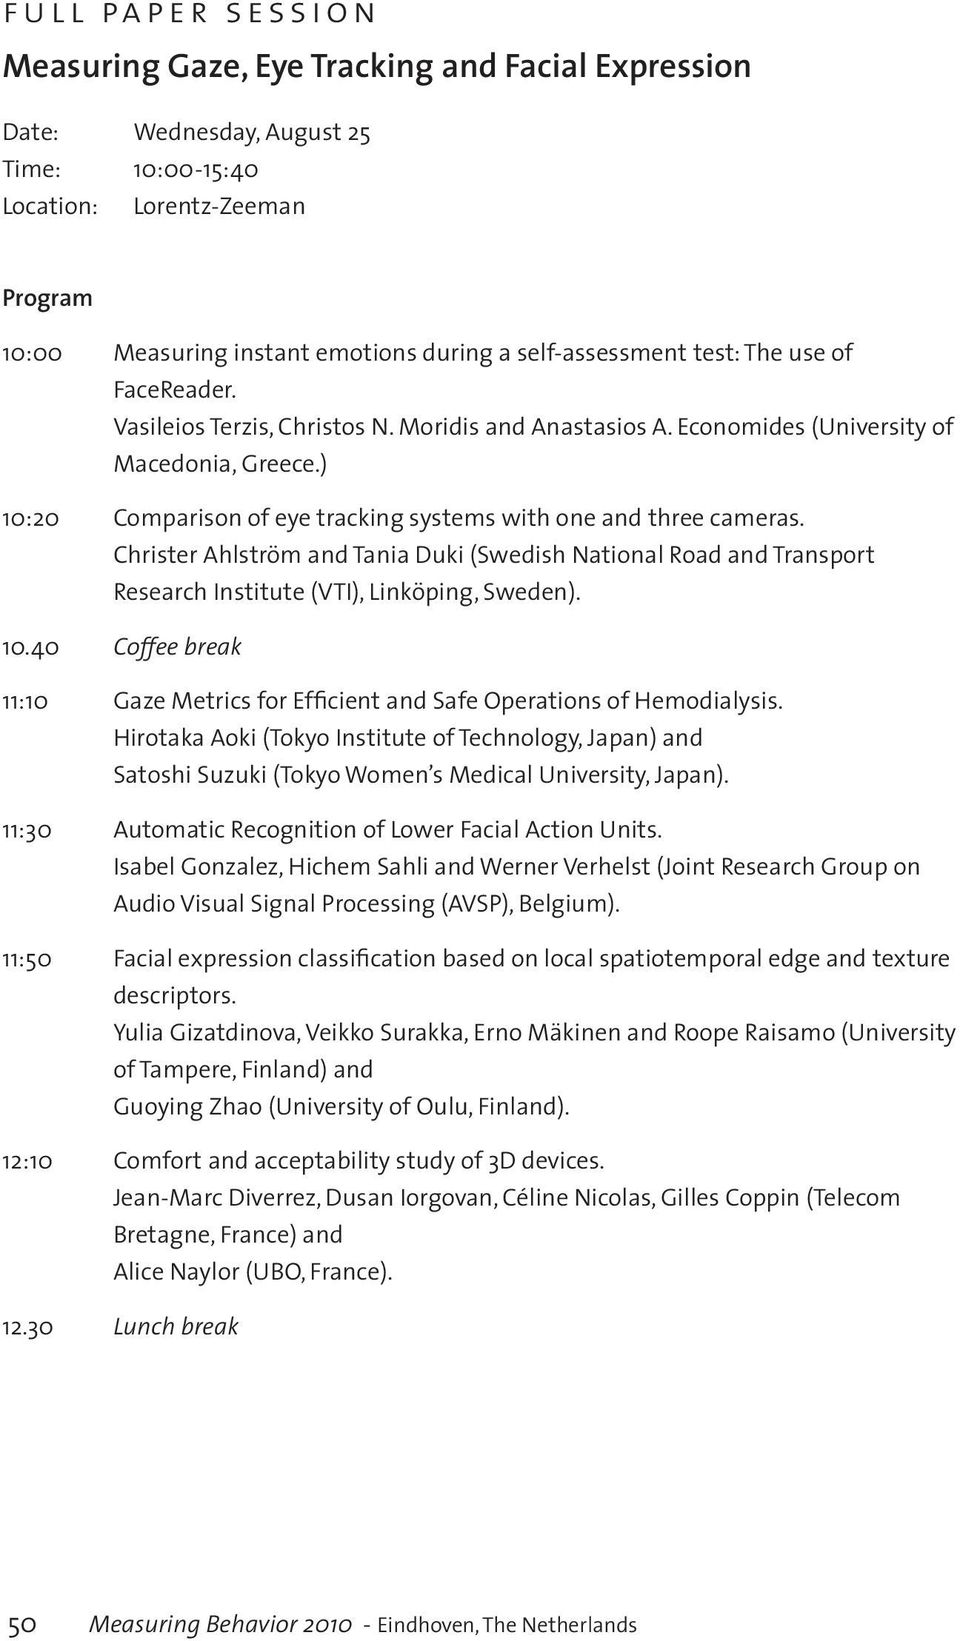 ) 10:20 Comparison of eye tracking systems with one and three cameras. Christer Ahlström and Tania Duki (Swedish National Road and Transport Research Institute (VTI), Linköping, Sweden). 10.40 Coffee break 11:10 Gaze Metrics for Efficient and Safe Operations of Hemodialysis.